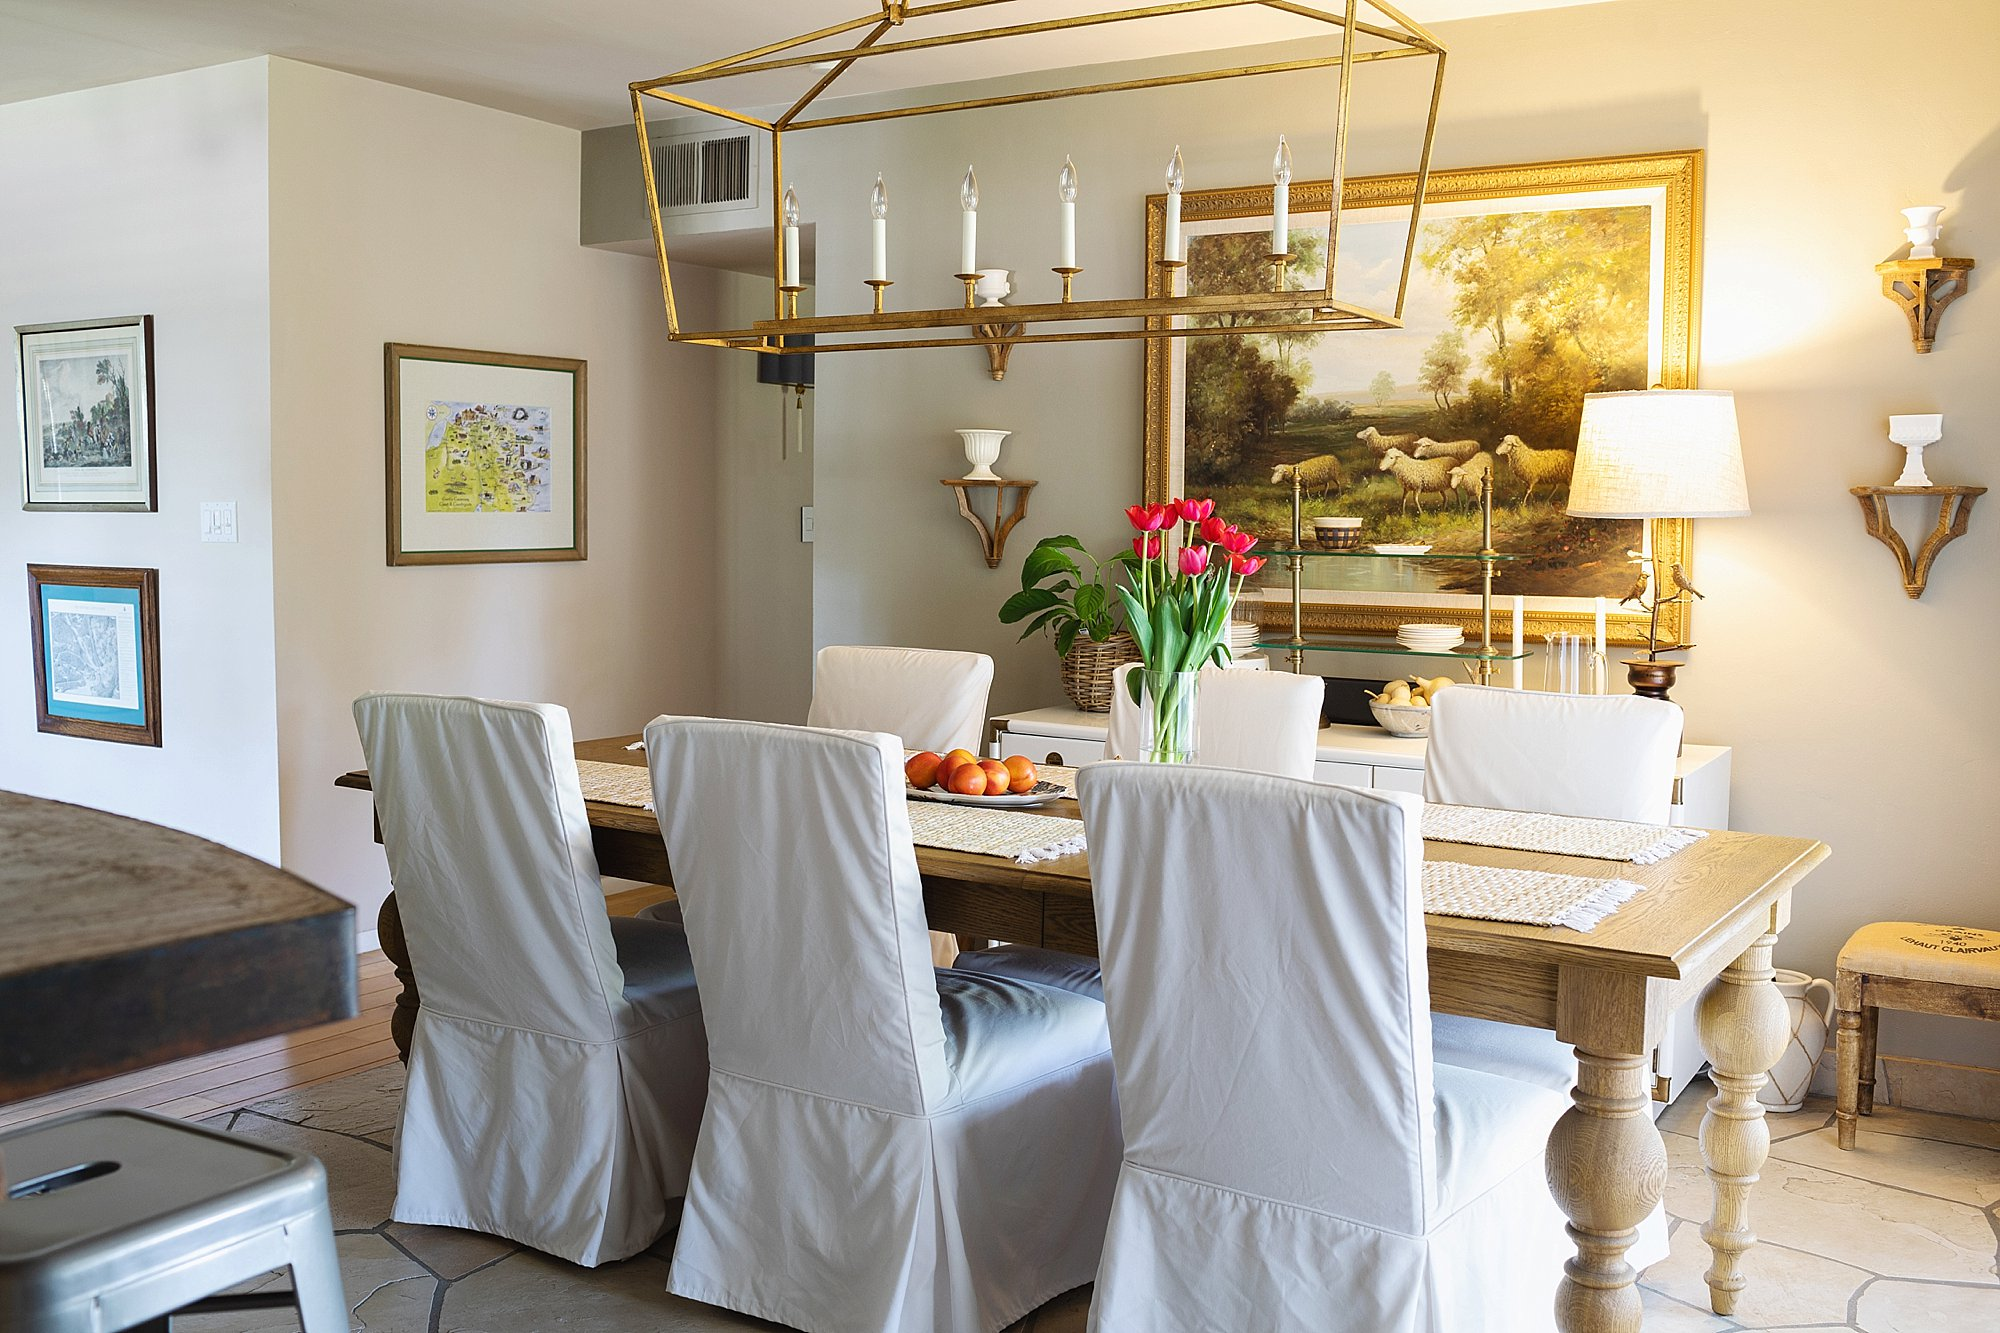 Dining room with rolling chairs from Ballard Designs and Restoration Hardware dining room table.